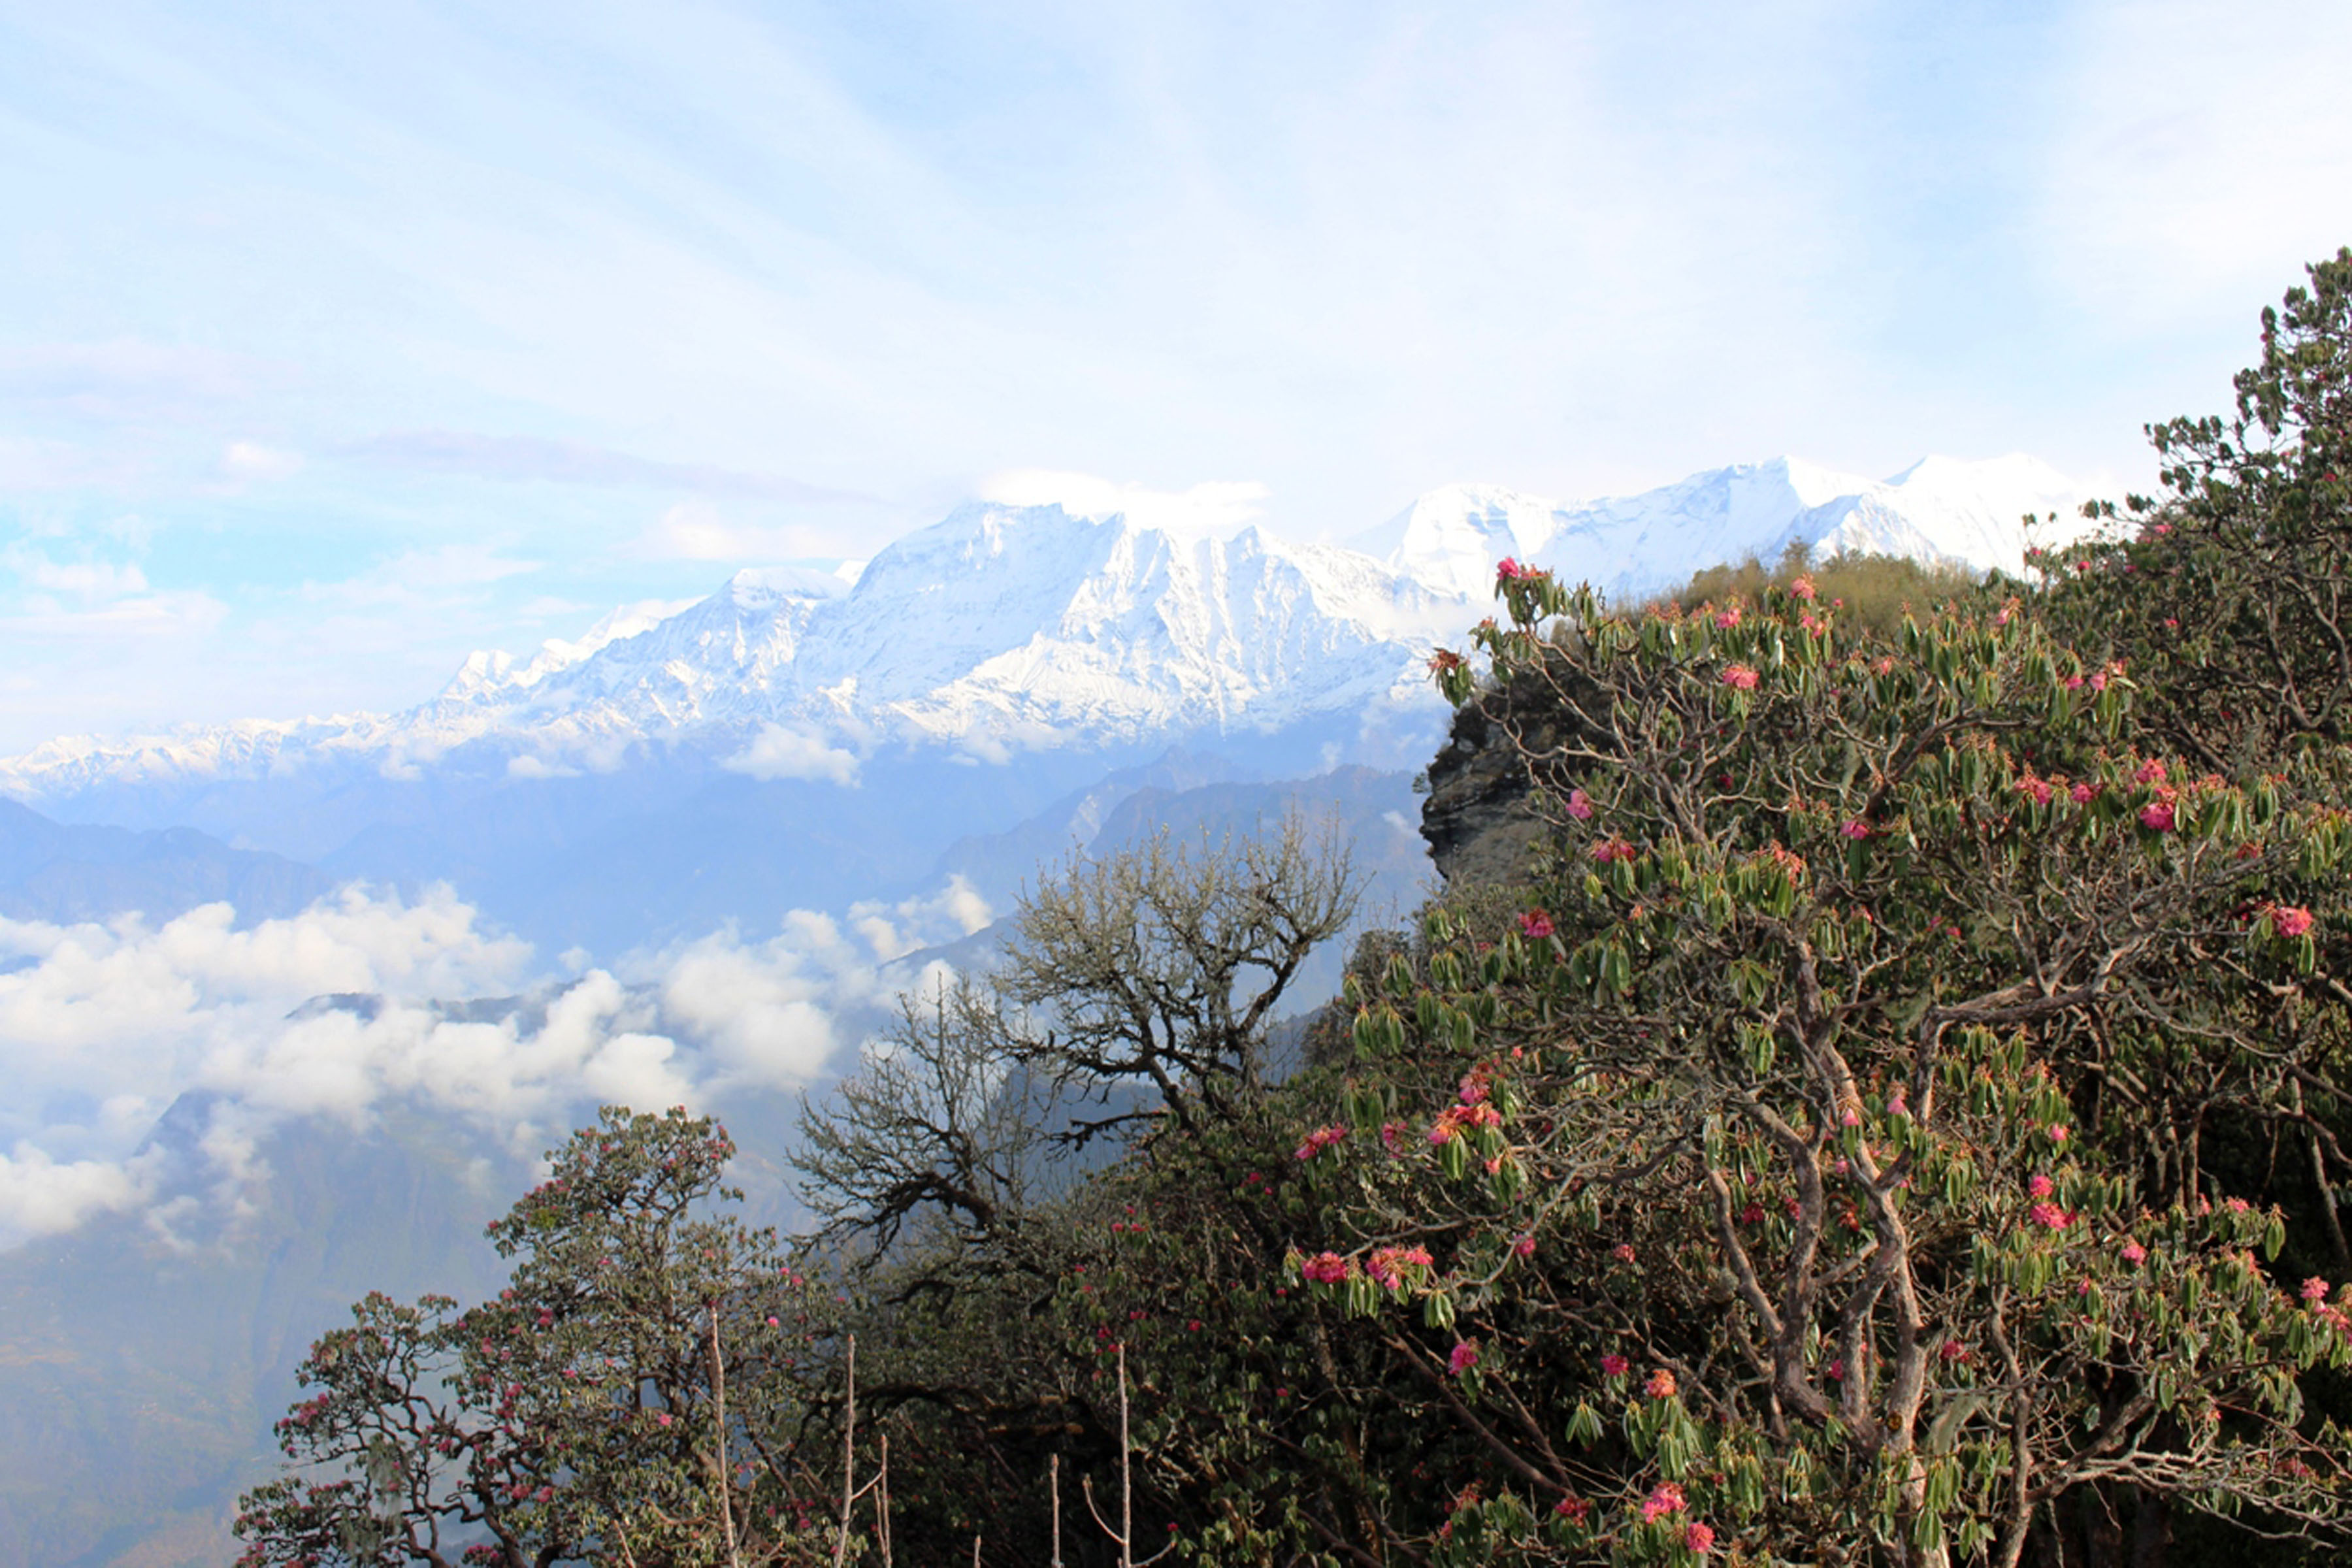 Dhaulagiri Mountain as seen from Malika Hill at 3400 metres above sea level in Myagdi . In the fore, Rhododendrons are seen in full blossom. Photo: Santosh Gautam/RSS